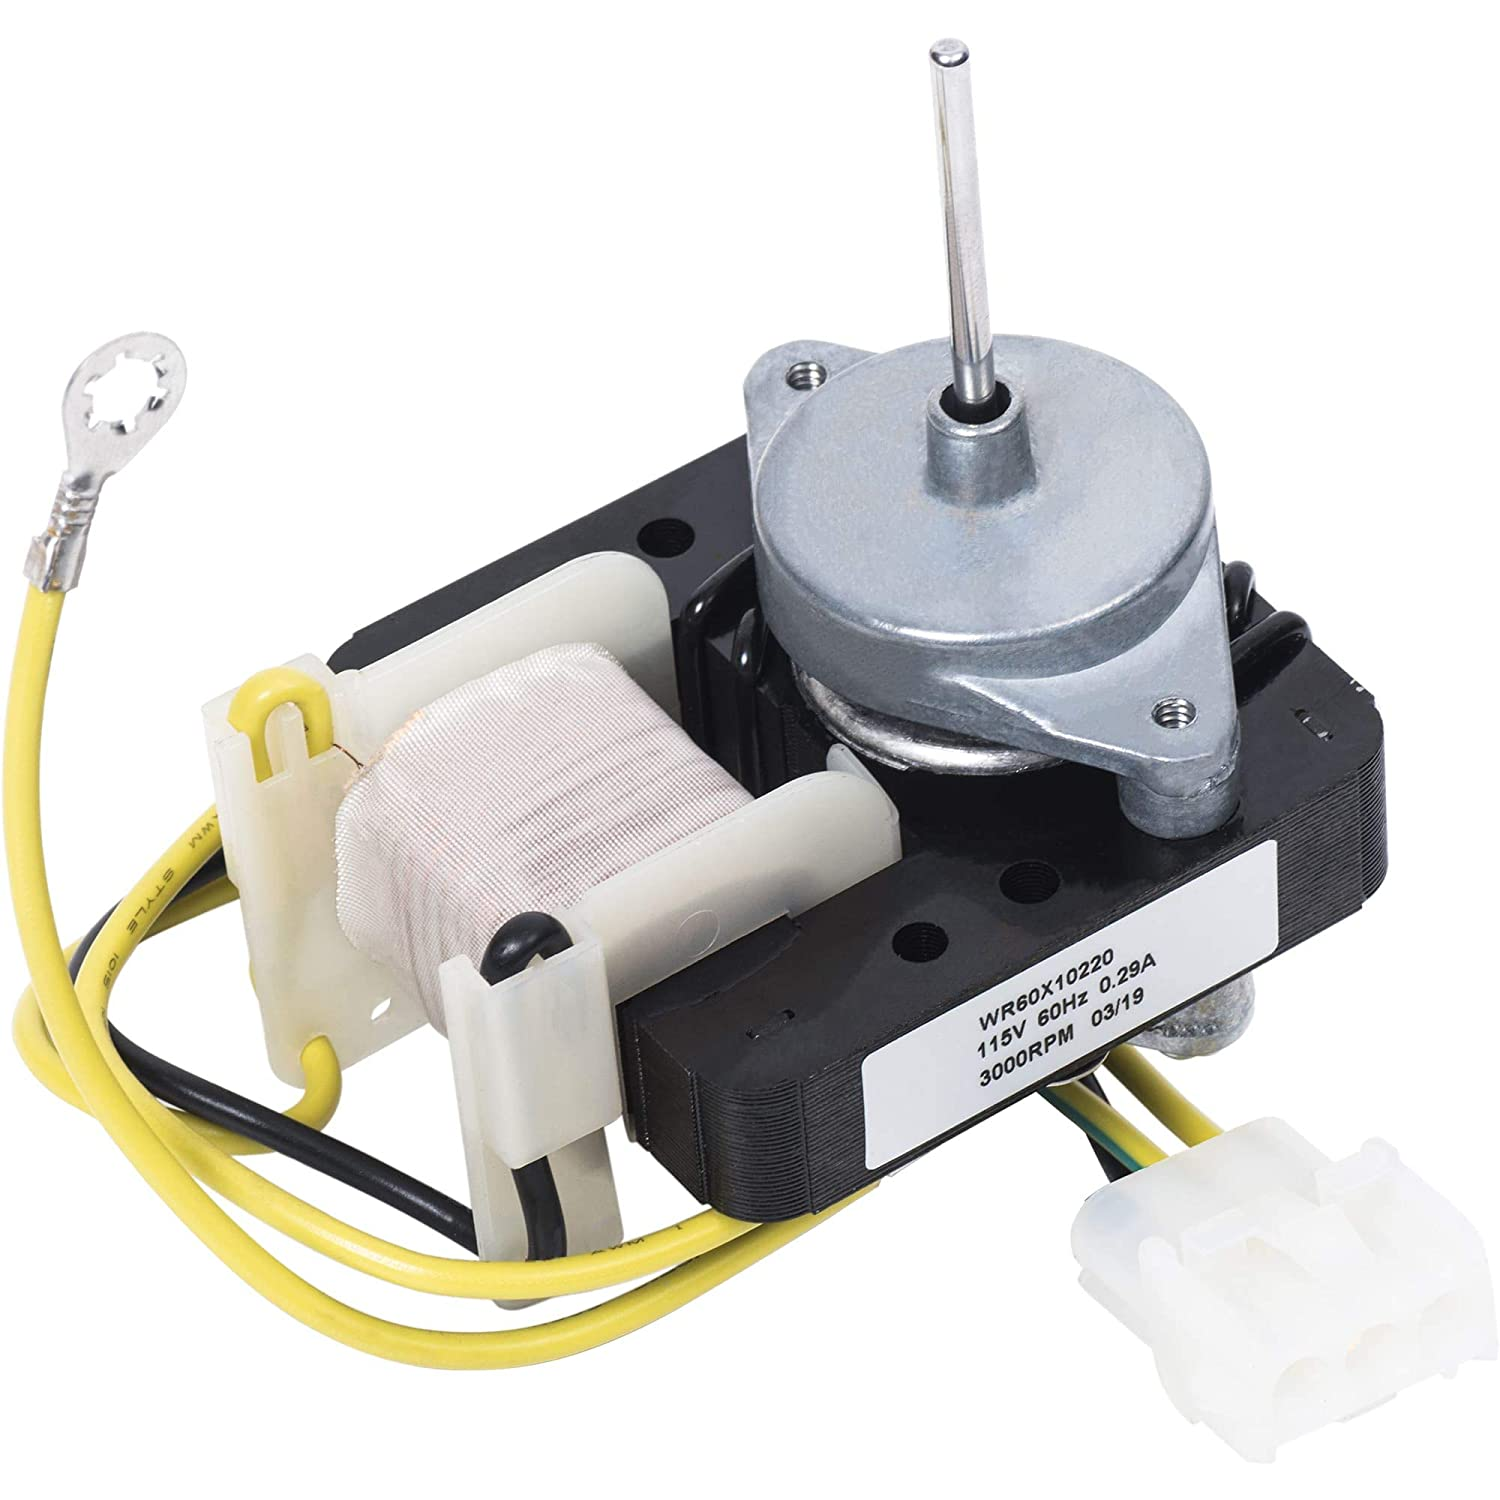 Ultra Durable WR60X10220 Refrigerator Condenser Fan Motor Replacement Part by Blue Stars – Exact Fit For GE & Hotpoint Refrigerators - Replaces AP4298602, WR60X10171, PS1766247